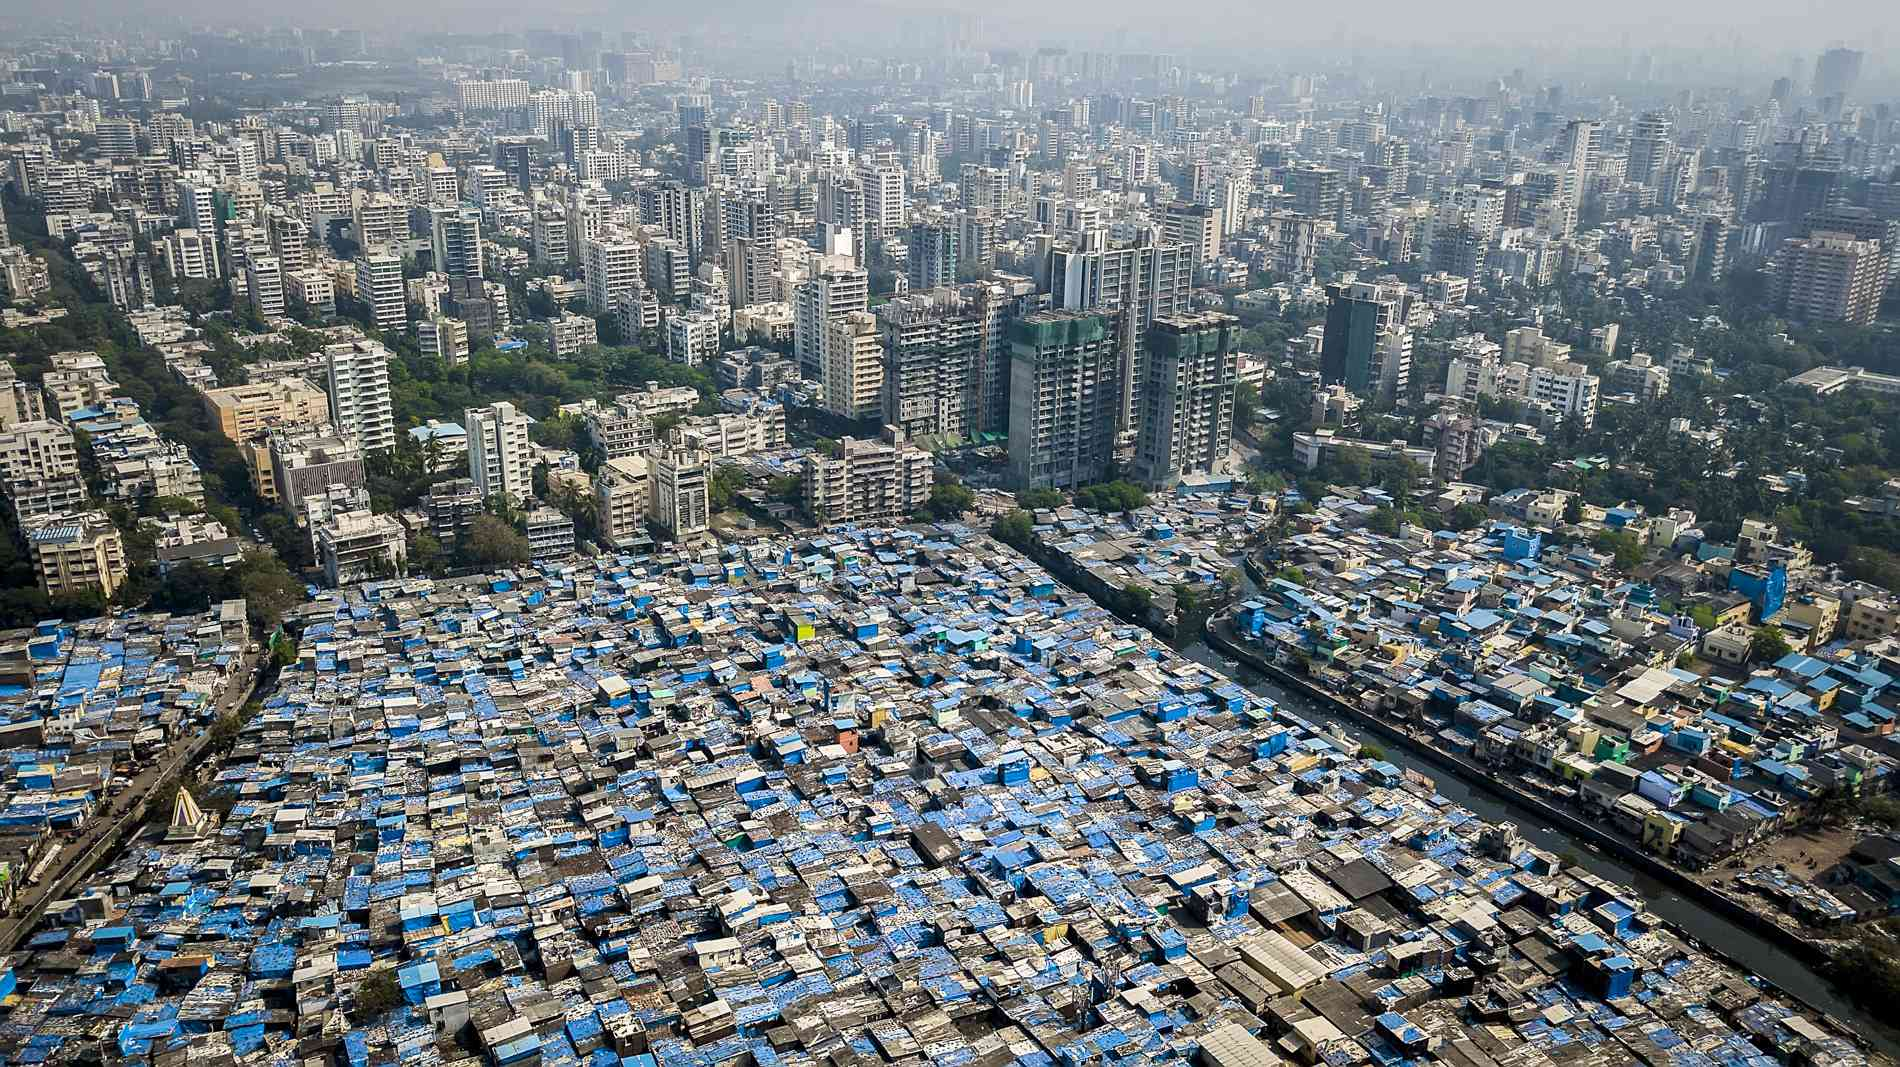 Luxury townships, modest buildings and slums share space in an immensely crowded city. Affordable housing remains a distant dream in Mumbai.